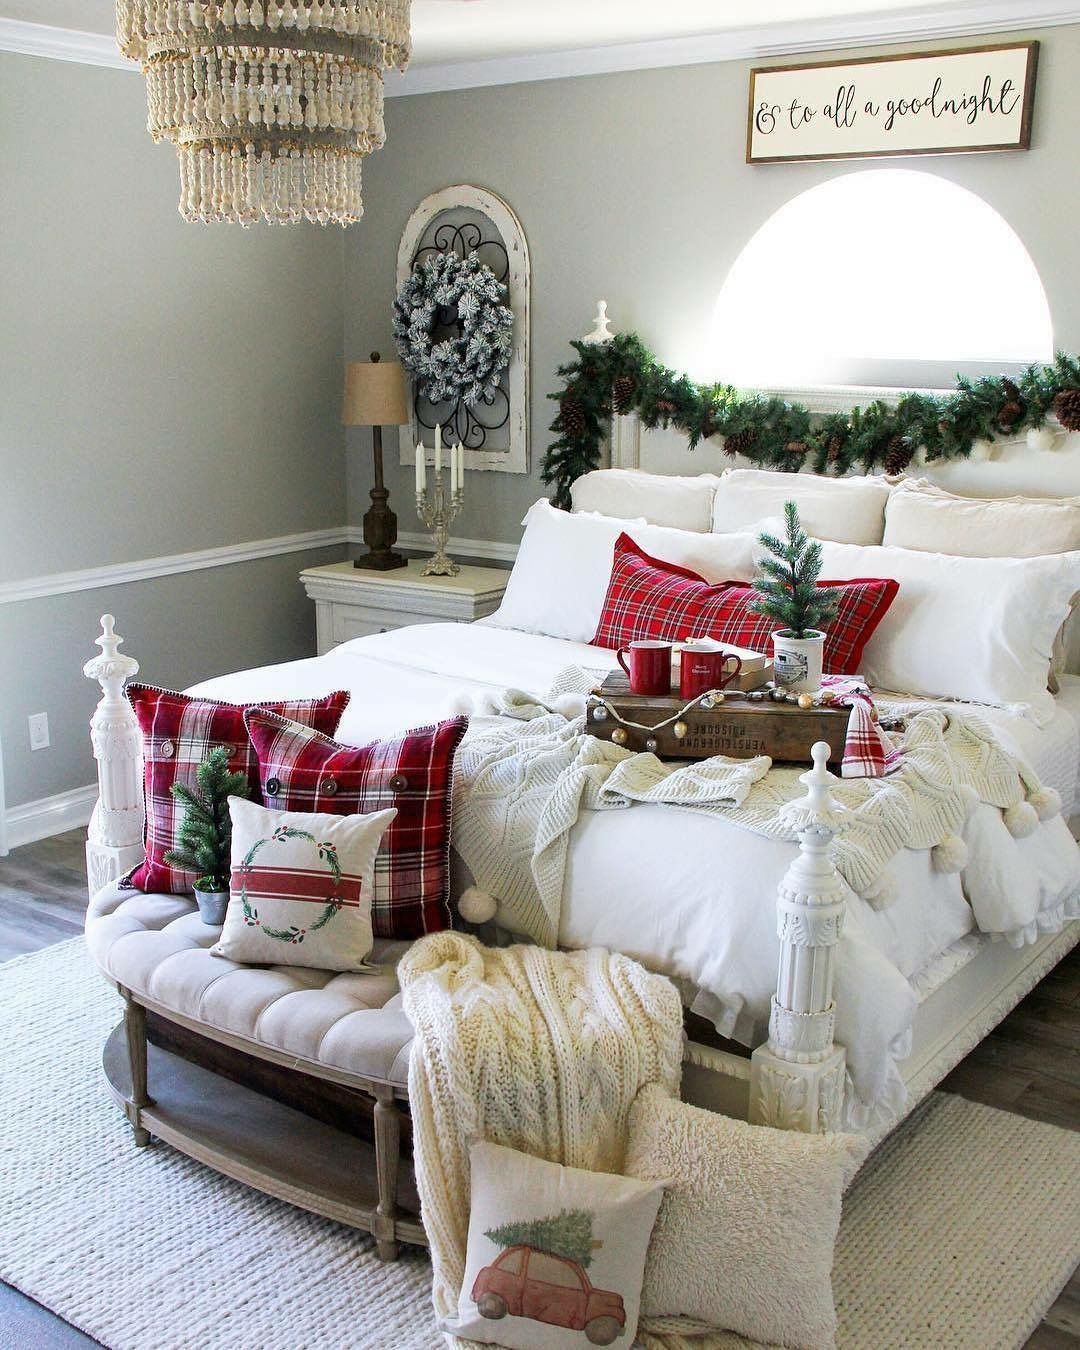 Love this cozy holiday bedroom. I would love a neutral guest room